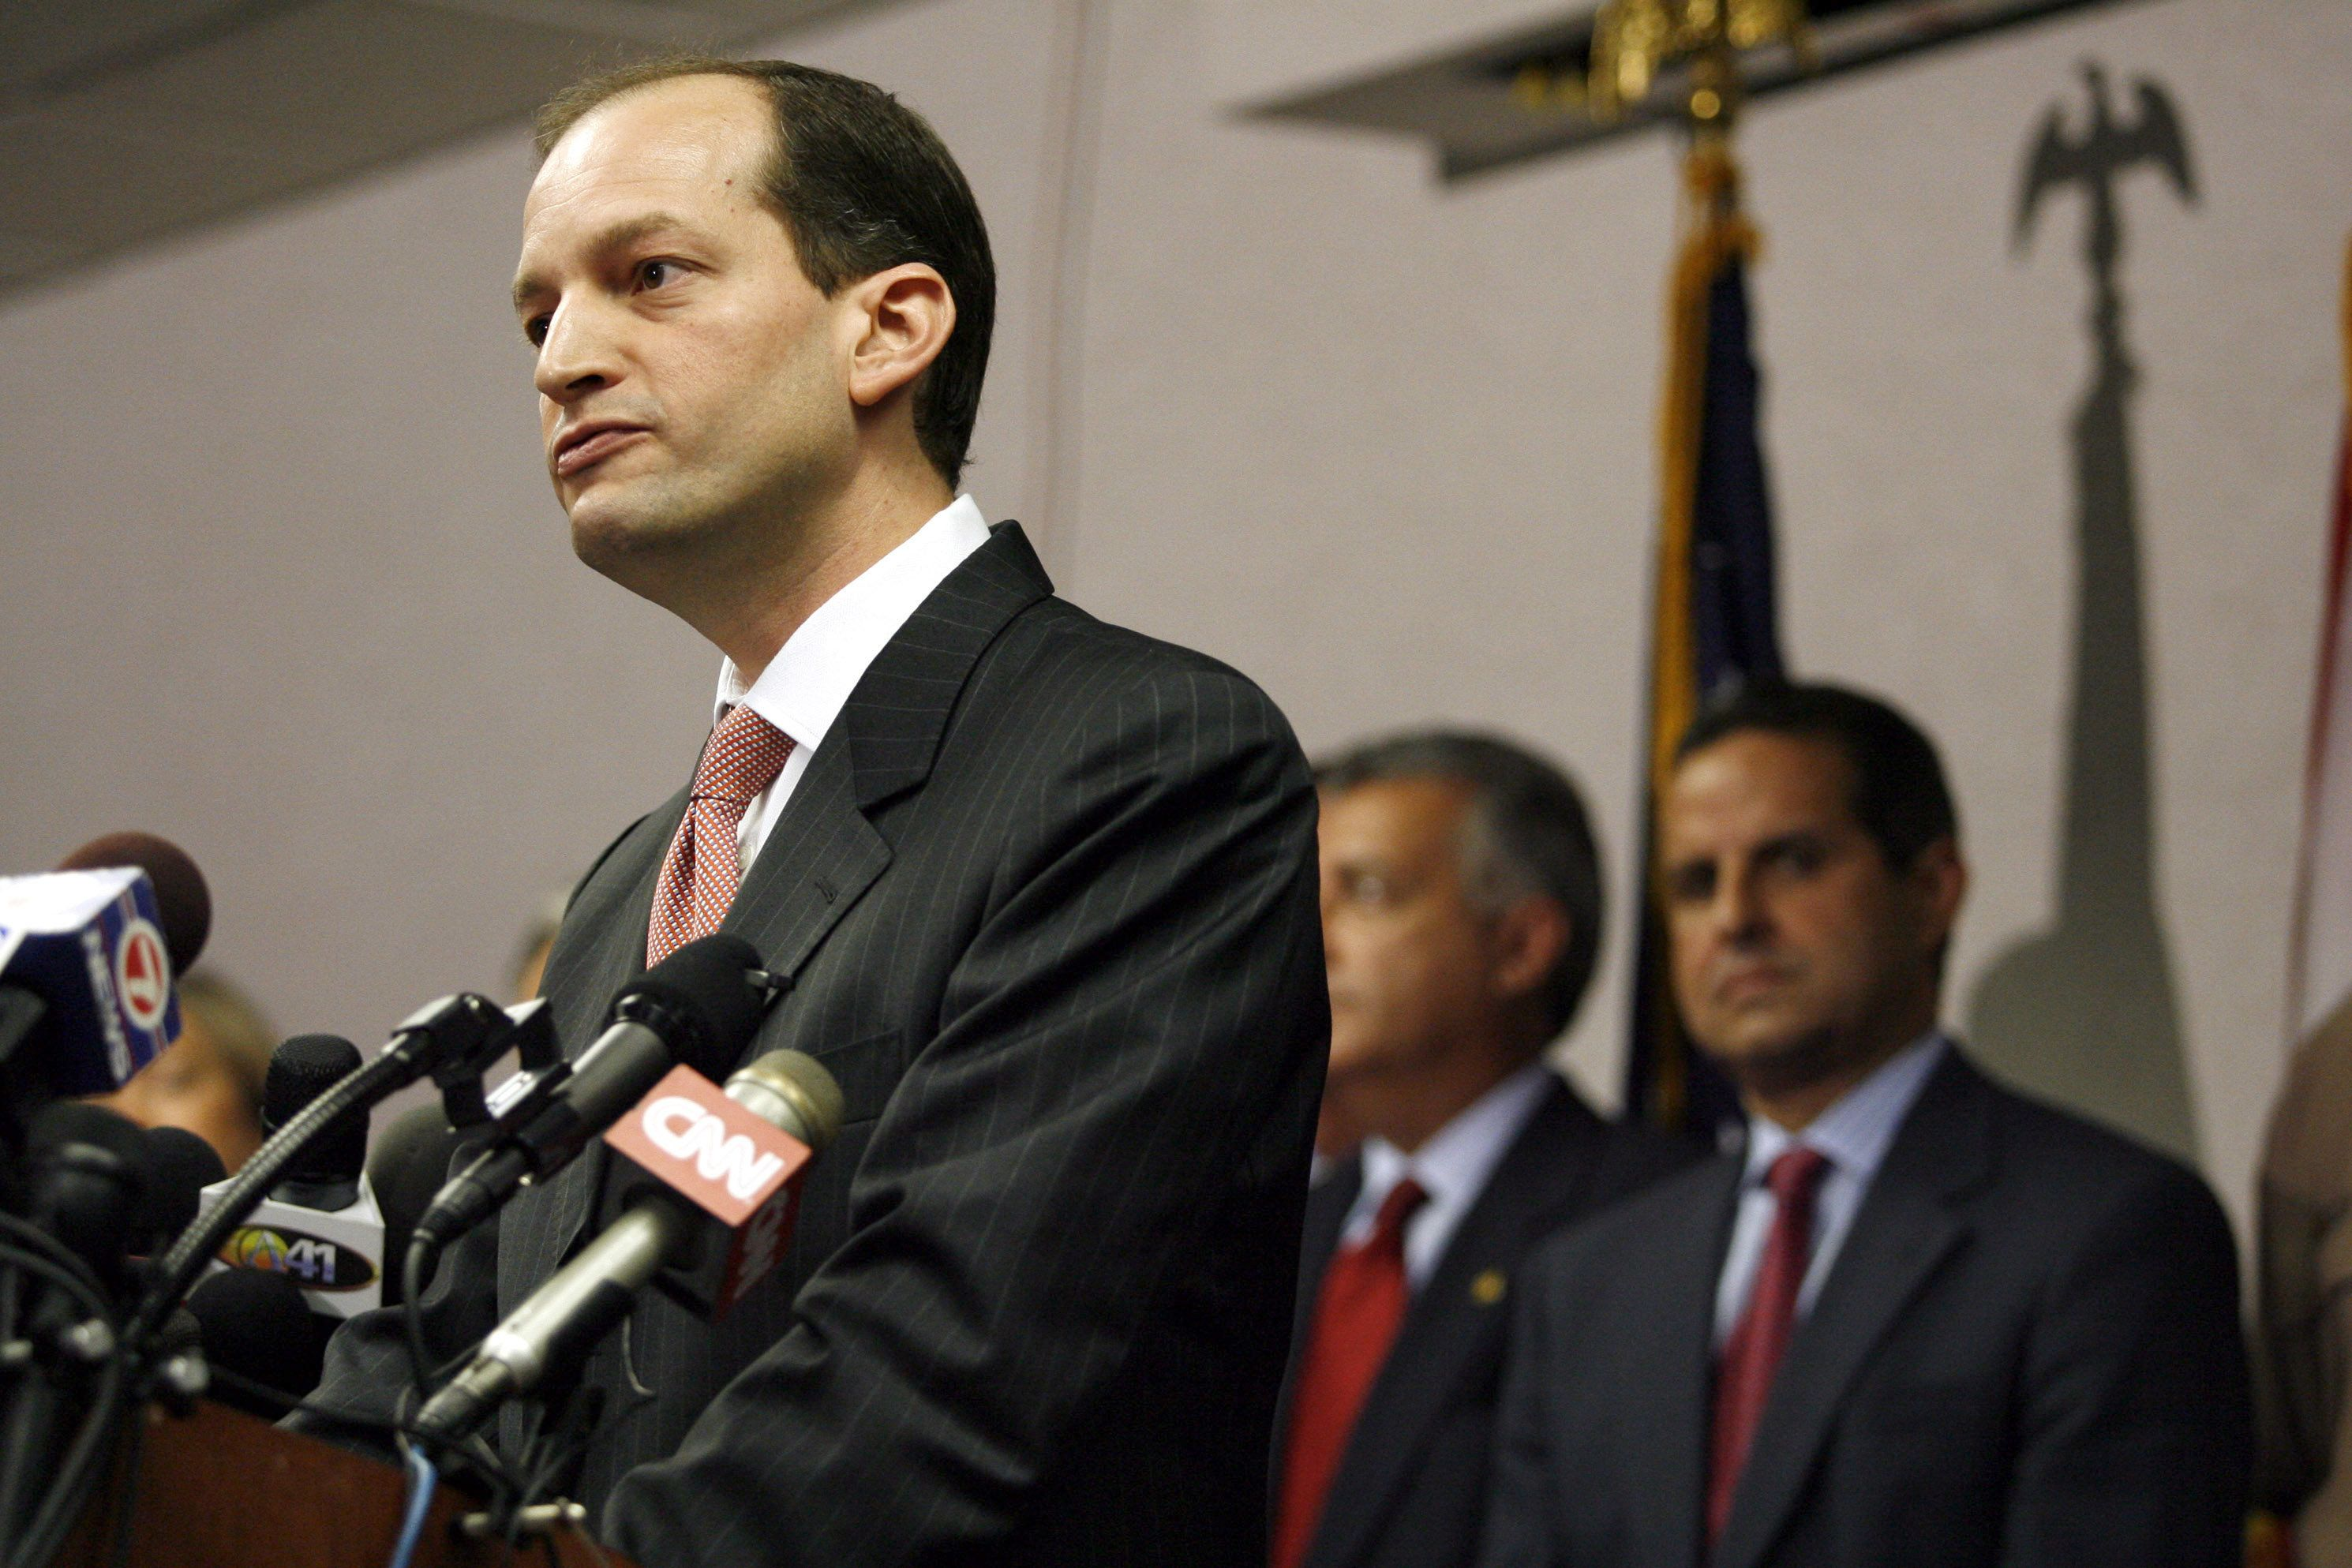 U.S. Attorney R. Alexander Acosta (L) holds a news conference about the arrest of seven people in Miami, Florida, June 23, 2006. The seven people arrested in Miami discussed attacks on the landmark Sears Tower in Chicago, the FBI building in Miami and other government buildings, U.S. officials said on Friday. Also in attendance was City of Miami Mayor Manny Diaz (R). REUTERS/Marc Serota  (UNITED STATES)